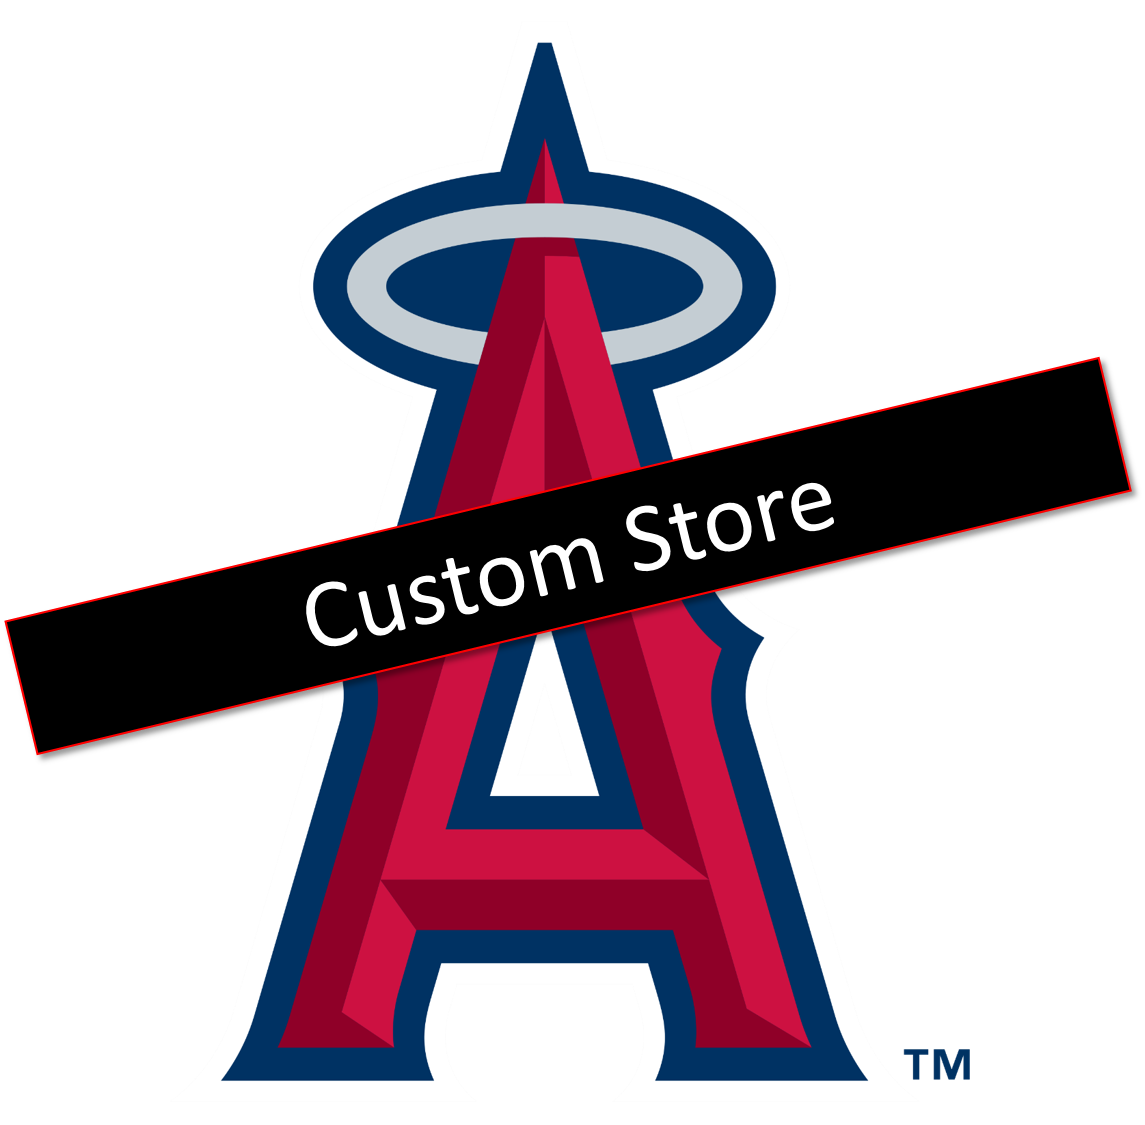 Clipart of royals baseball hat graphic freeuse download Los Angeles Angels of Anaheim Low Profile Hats graphic freeuse download